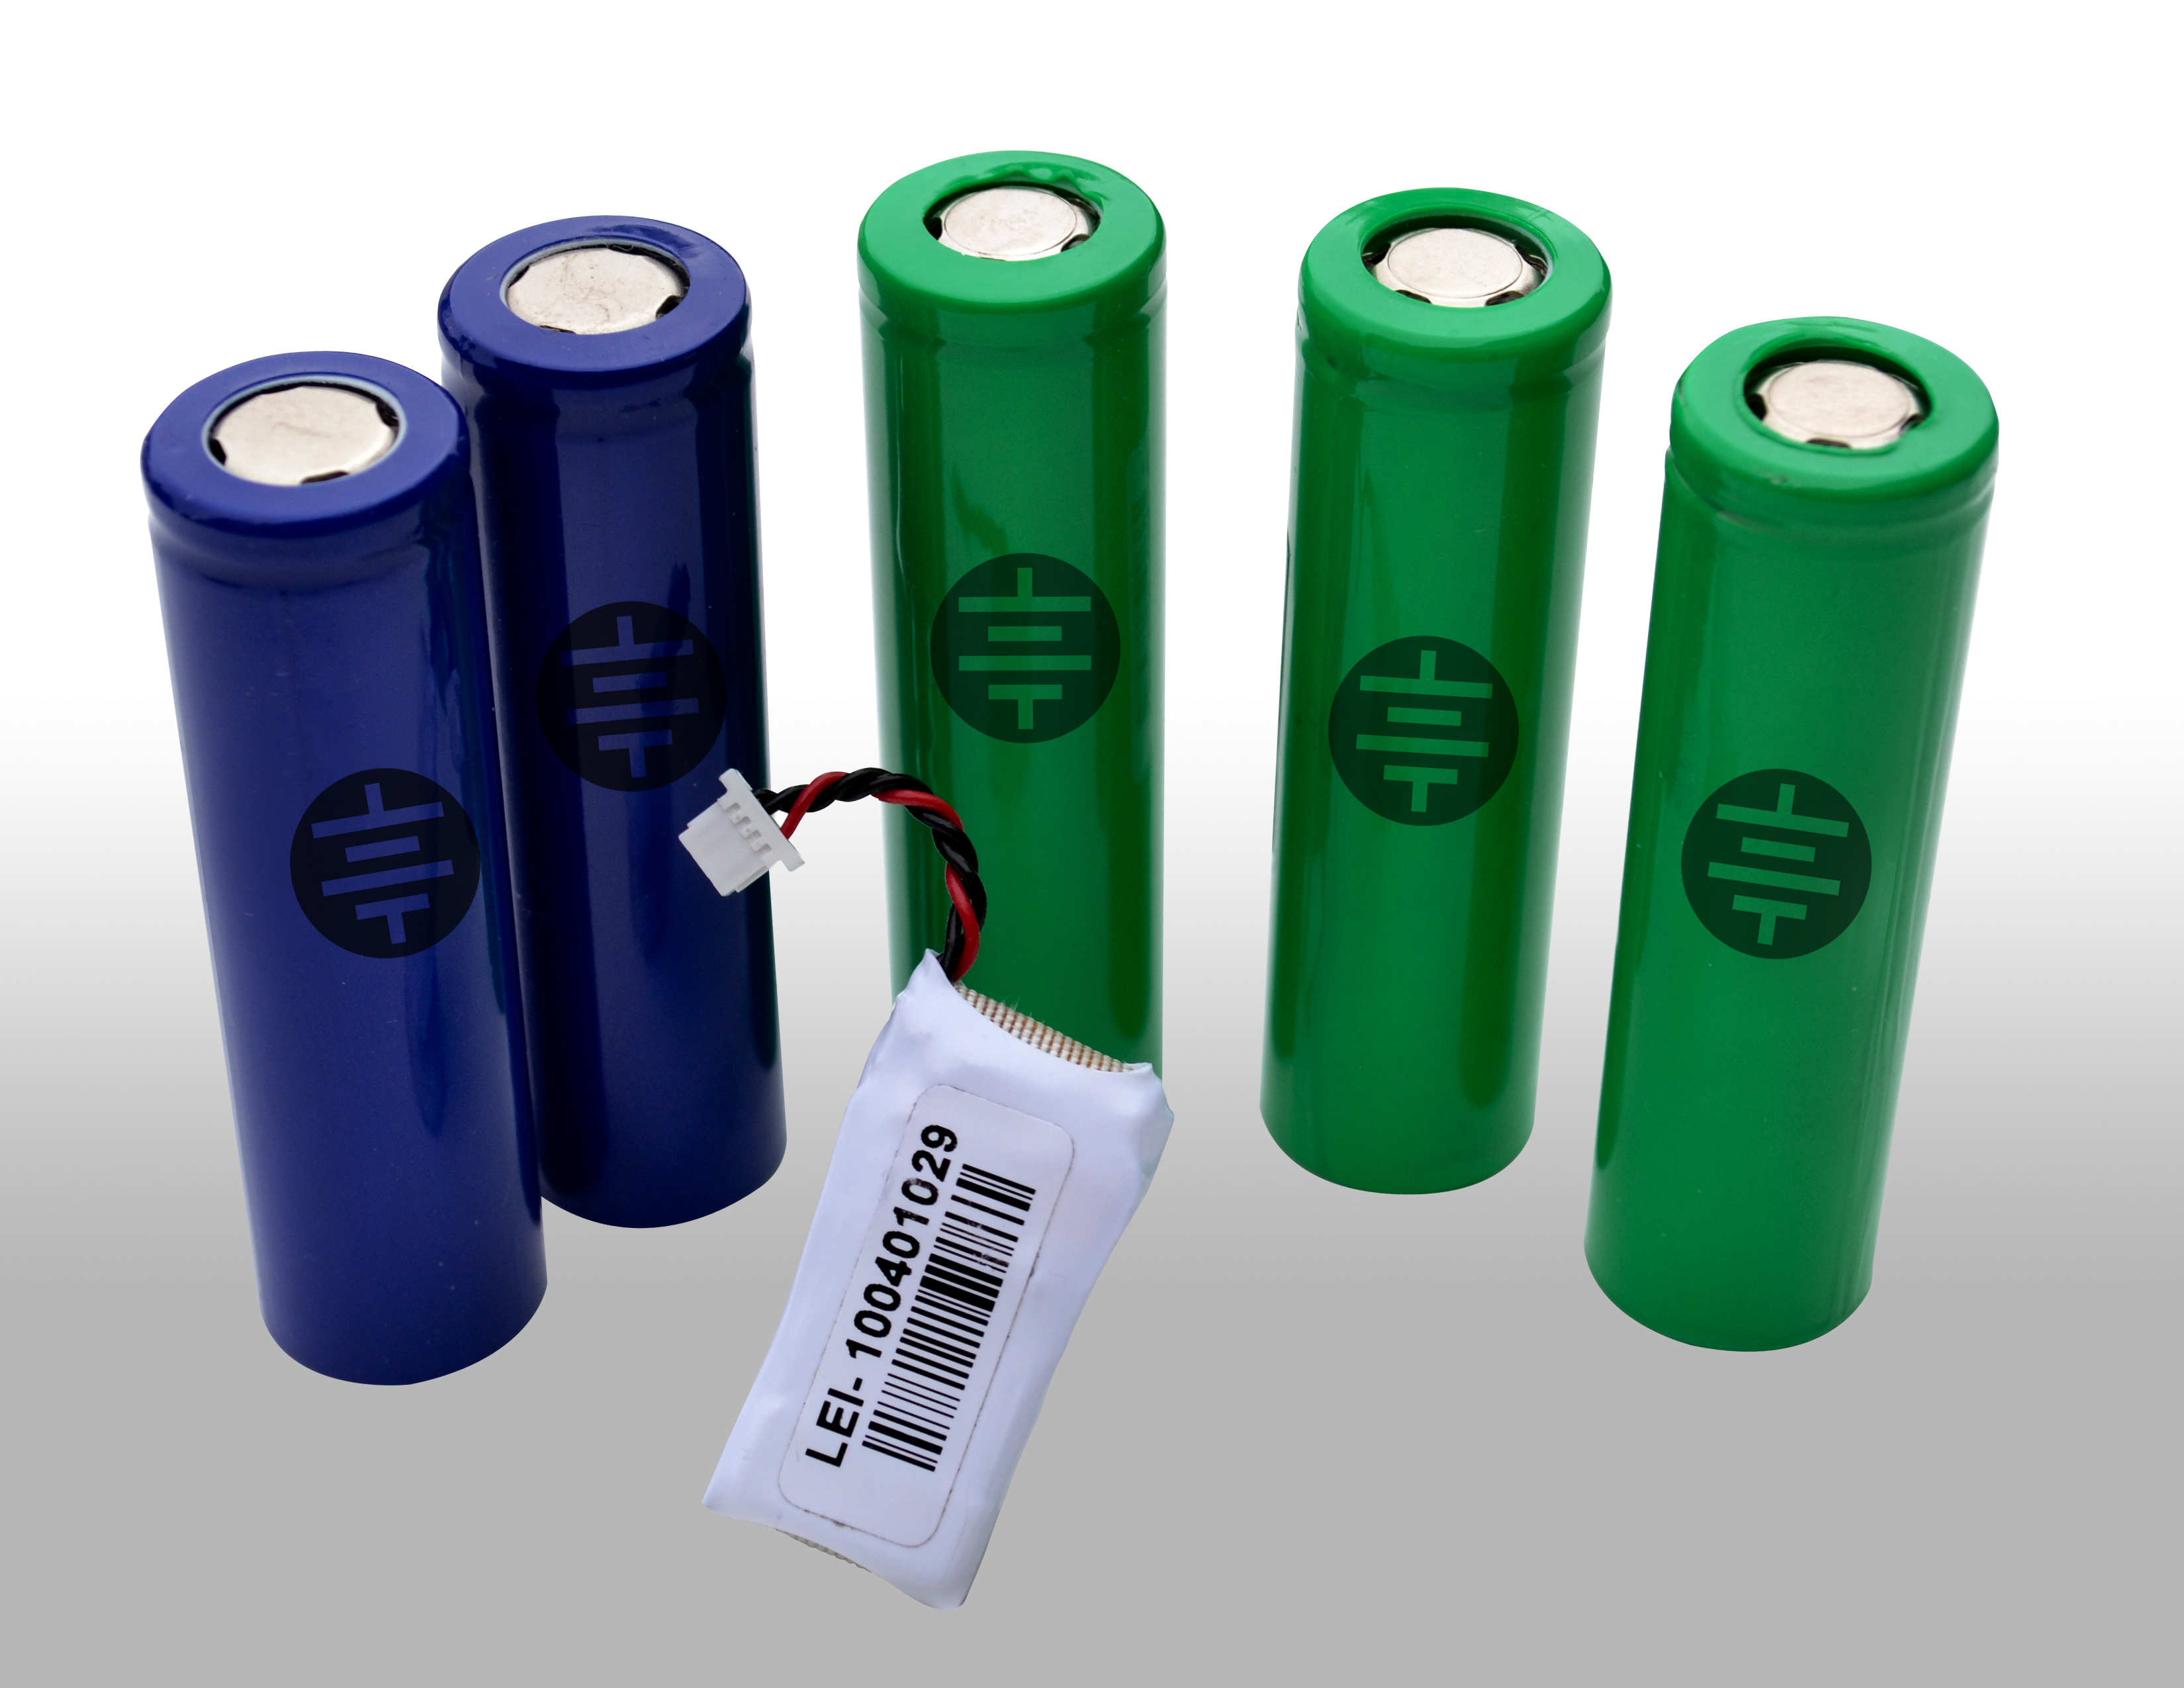 Leyden Energy lithium ion batteries, image courtesy of Leyden Energy.